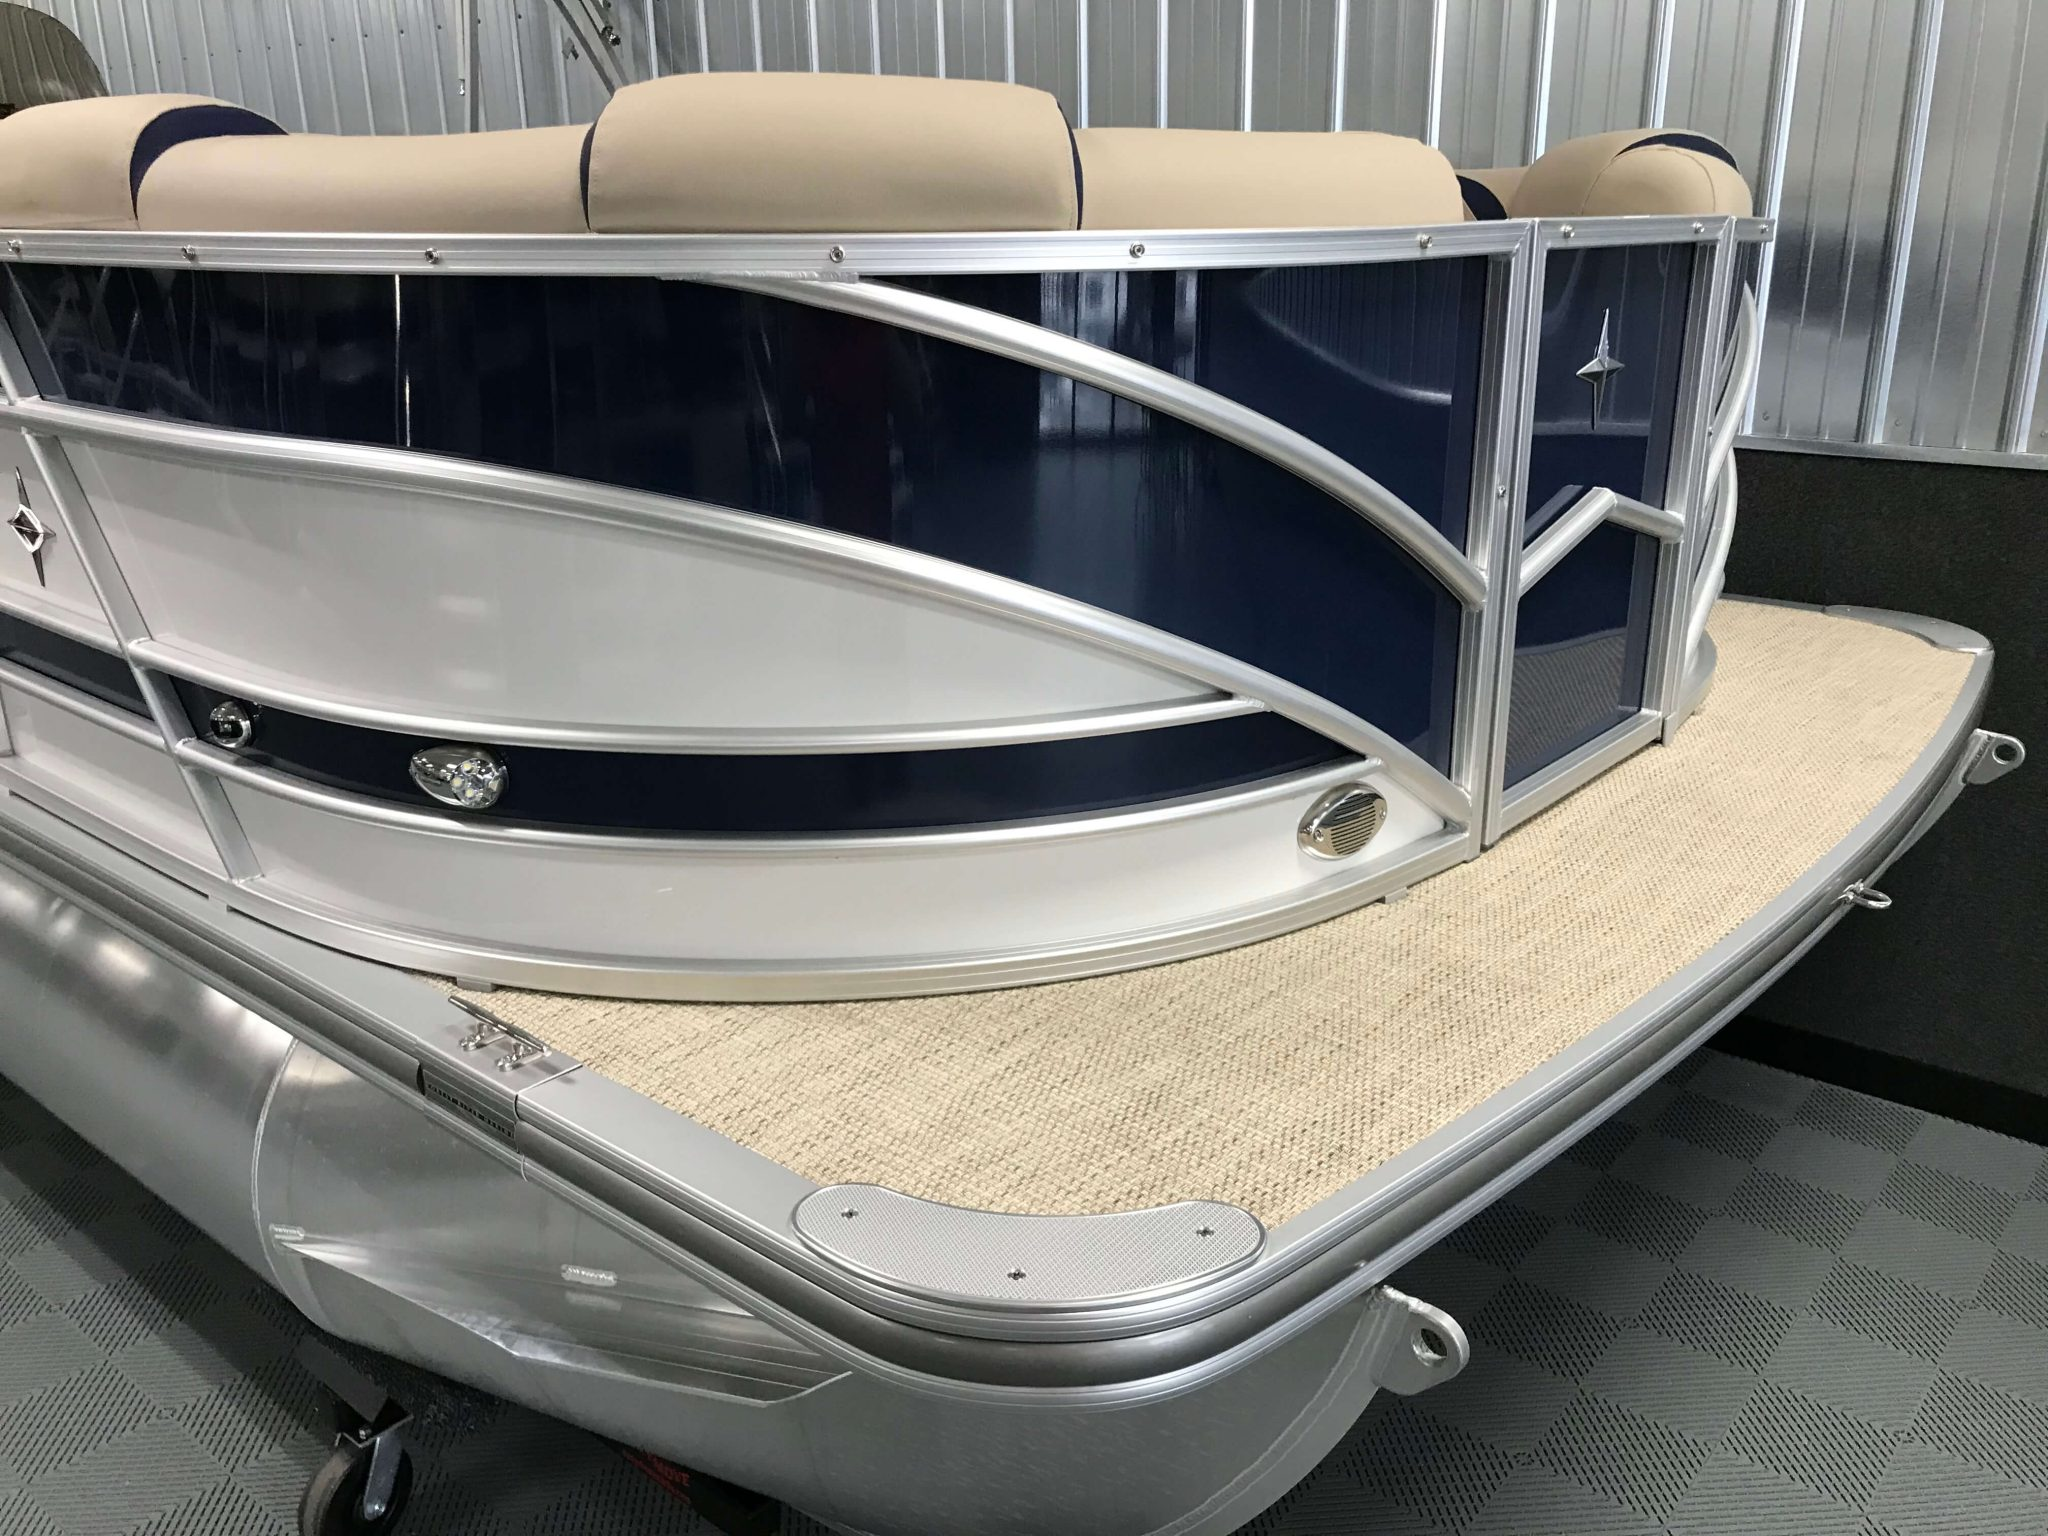 2019 Berkshire 23RFC2 STS Deluxe Pontoon Blue And White 4